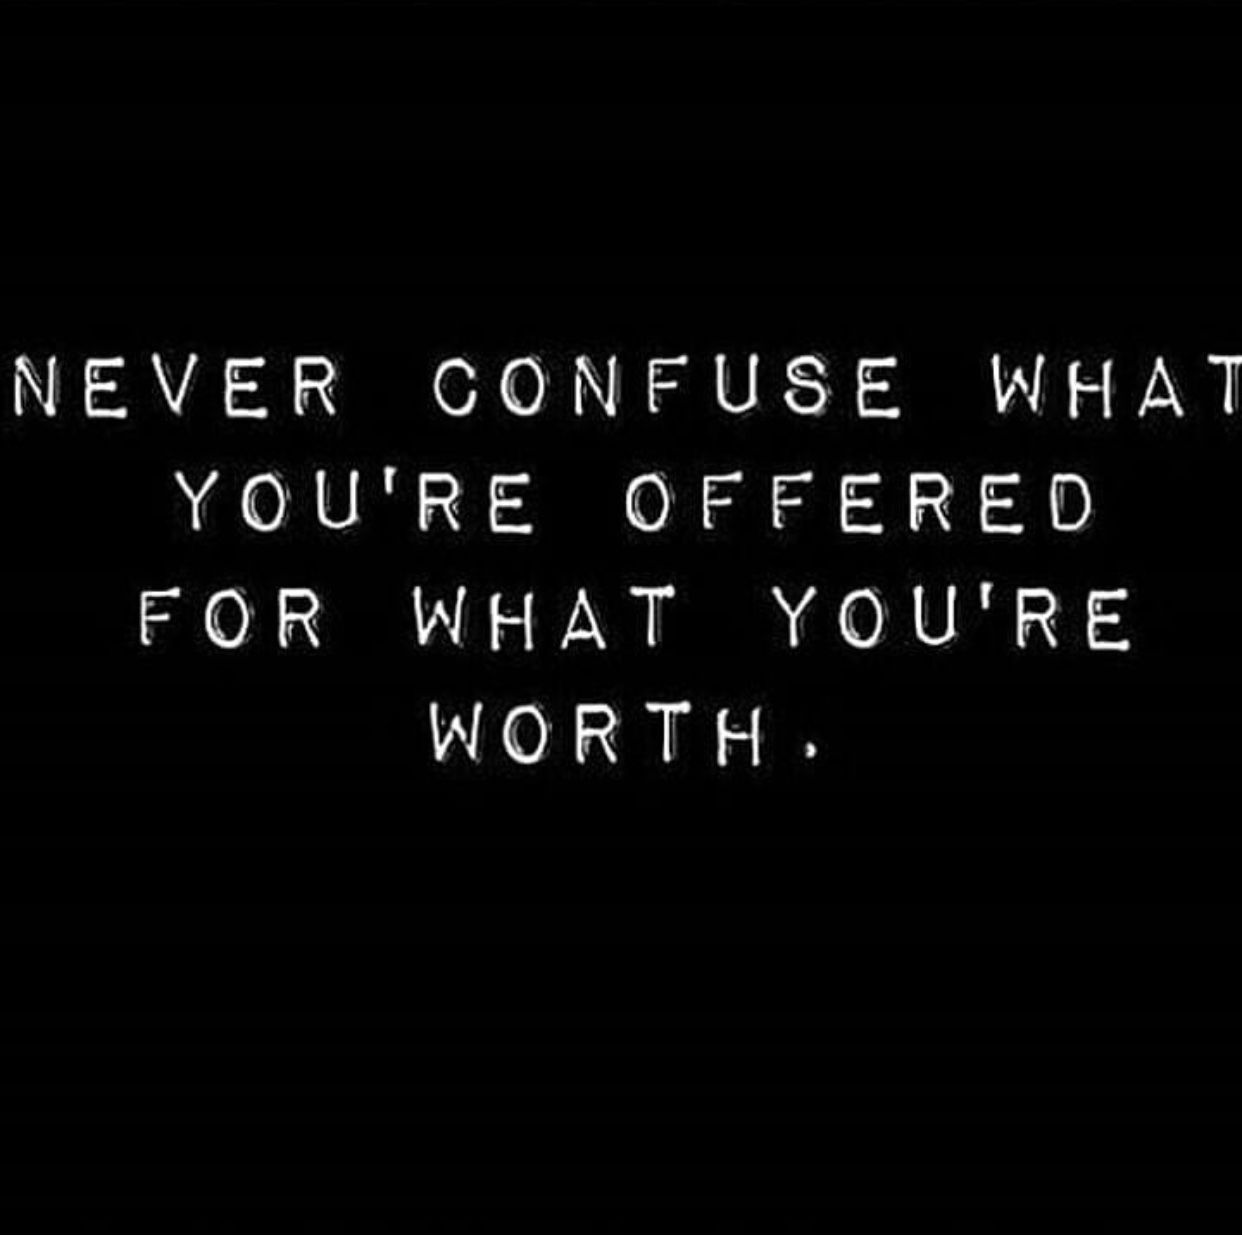 Know your worth | Life quotes, Words, True words